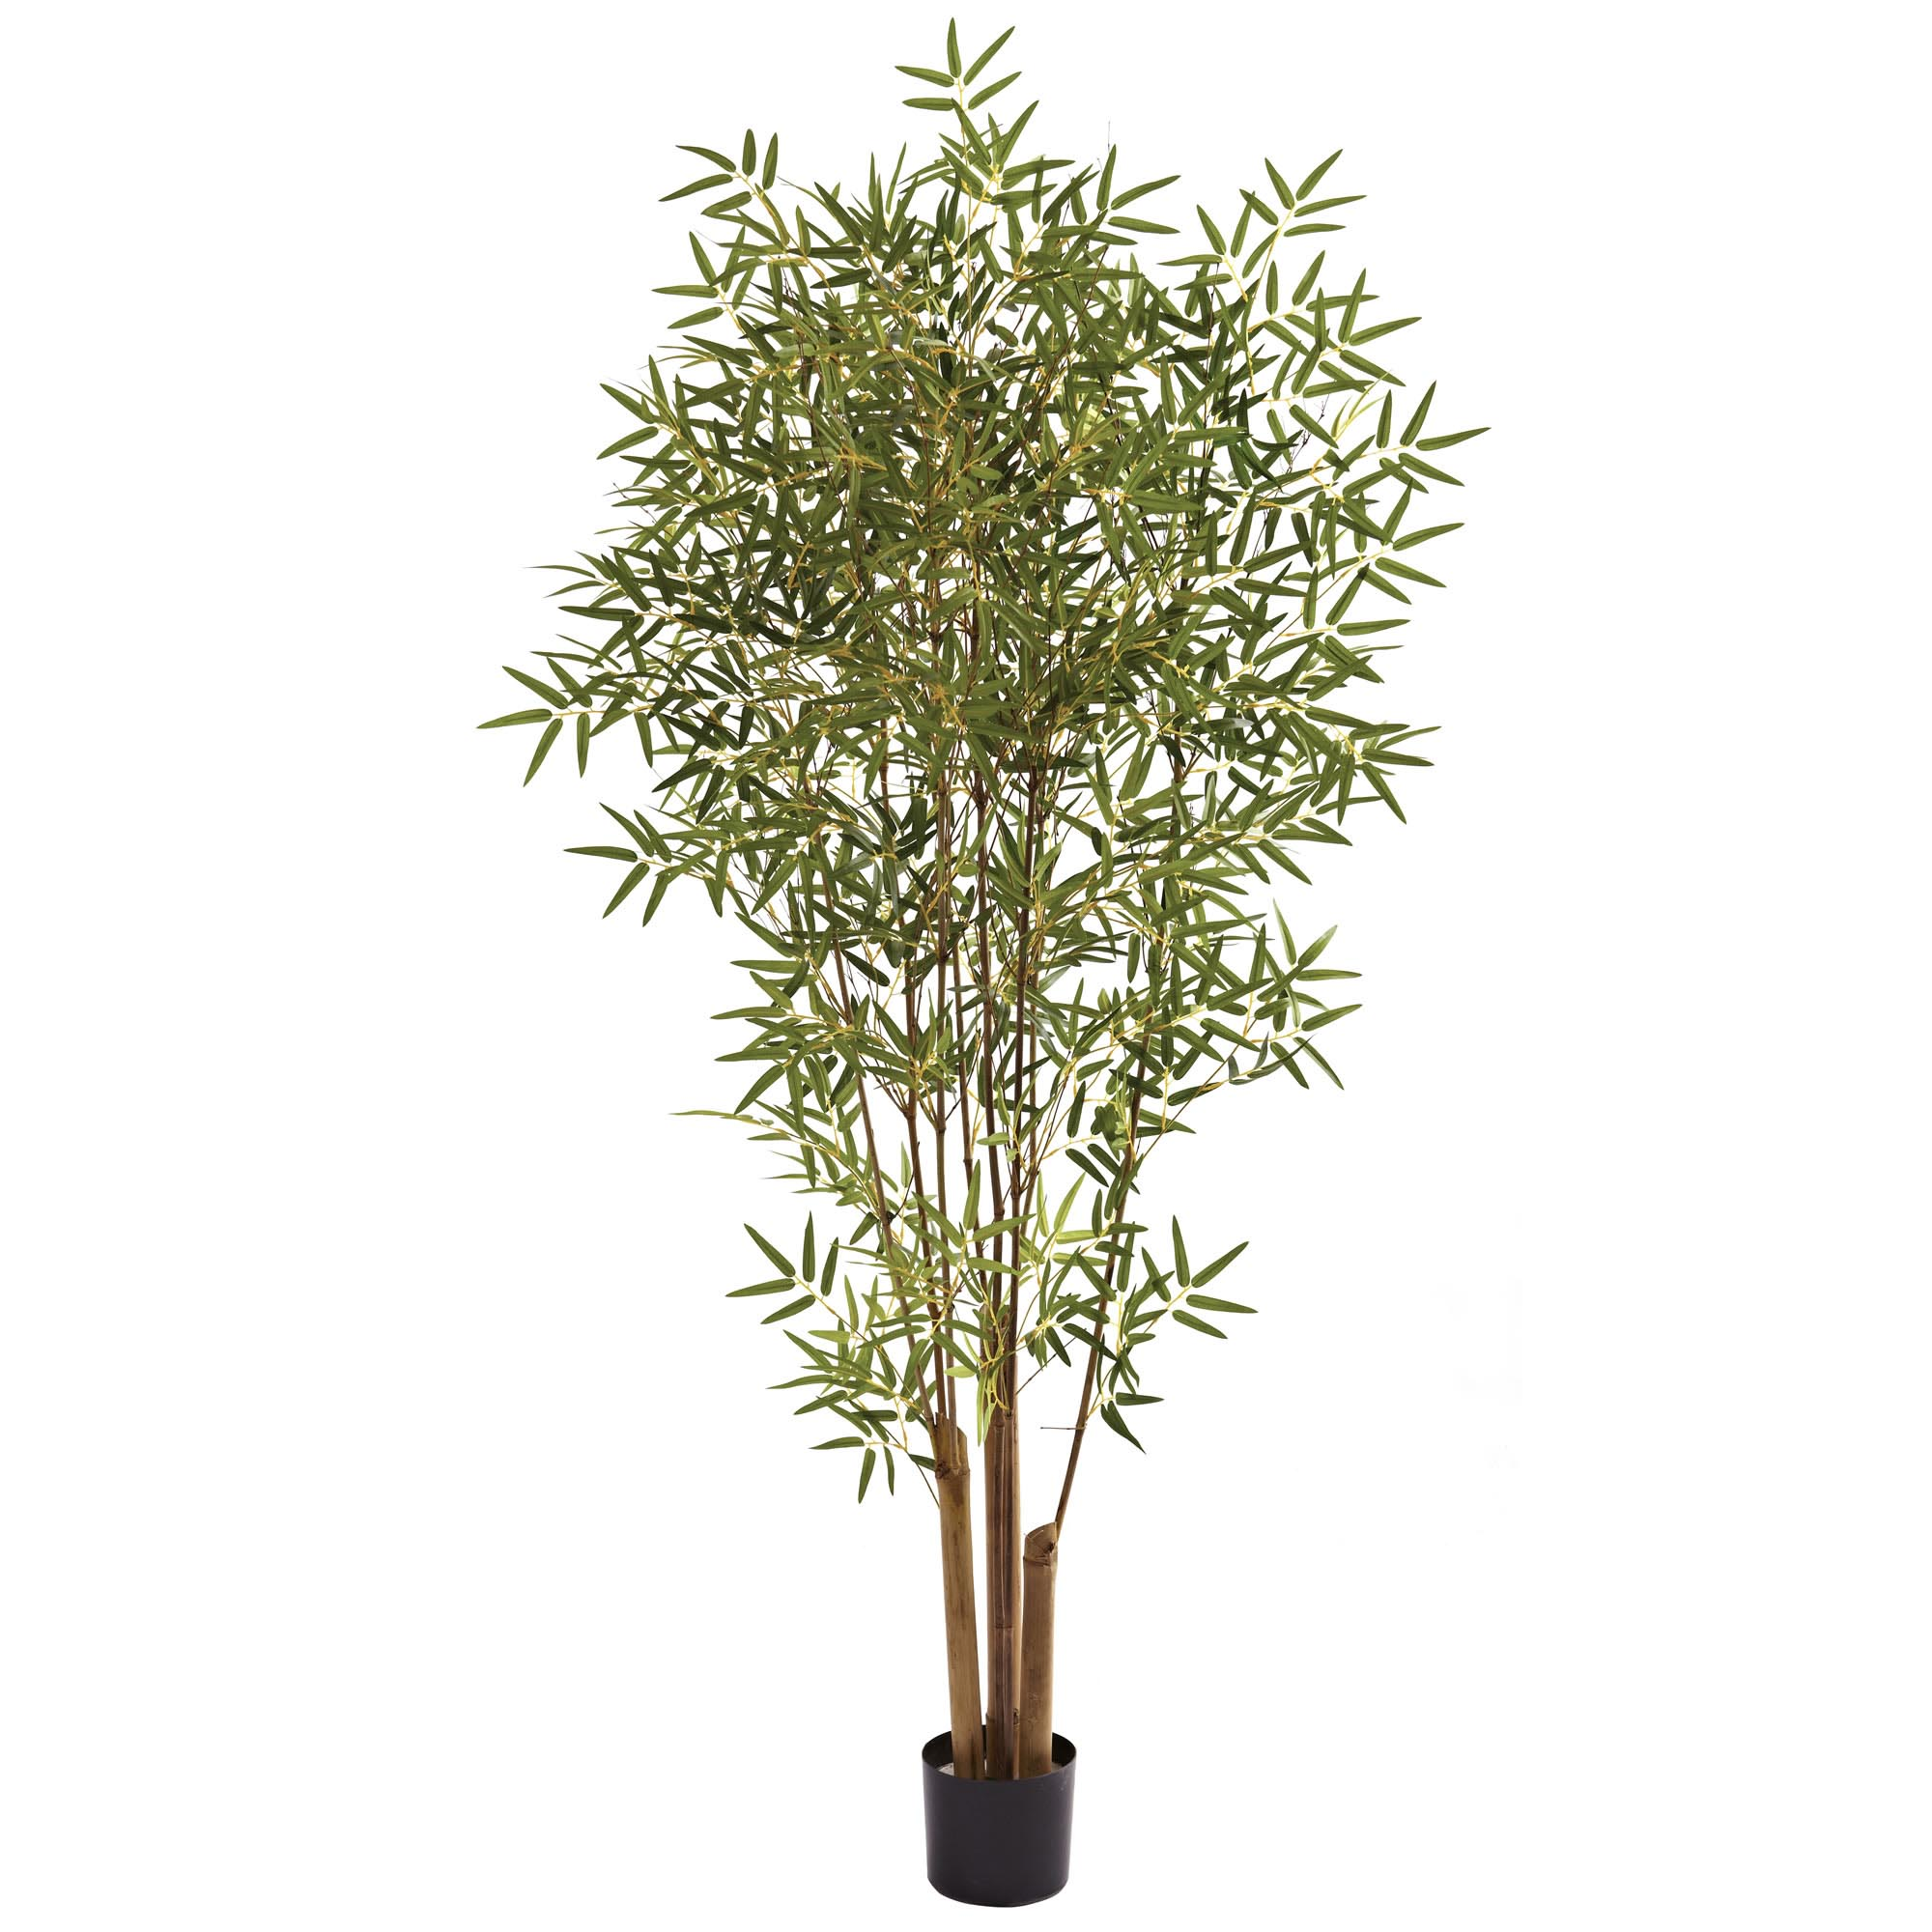 6 foot Artificial Japanese Bamboo Tree: Potted | 5361